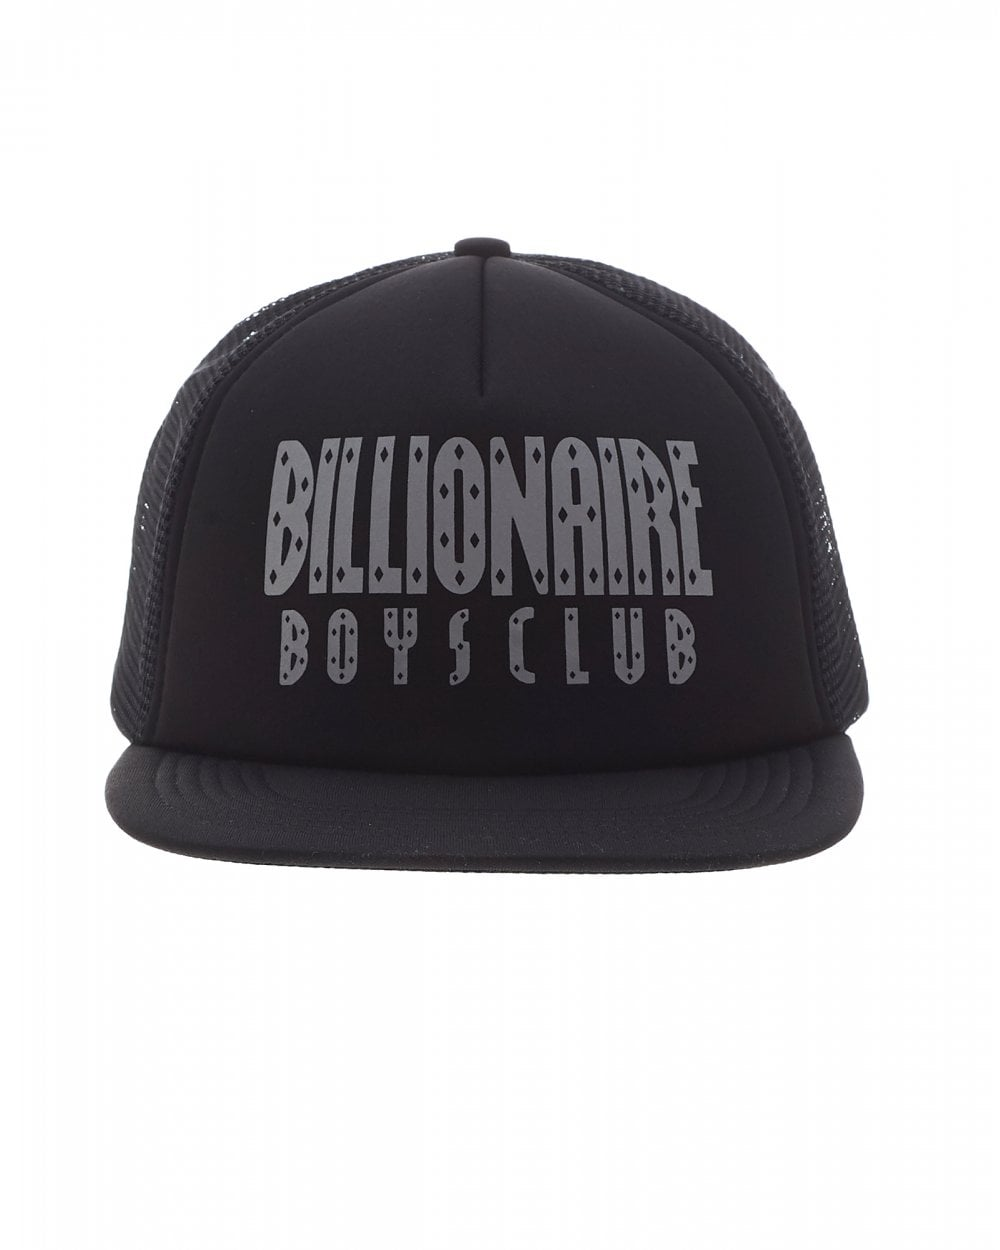 Billionaire Boys Club Mens Straight Logo Black Trucker Cap 7210f6012ab2